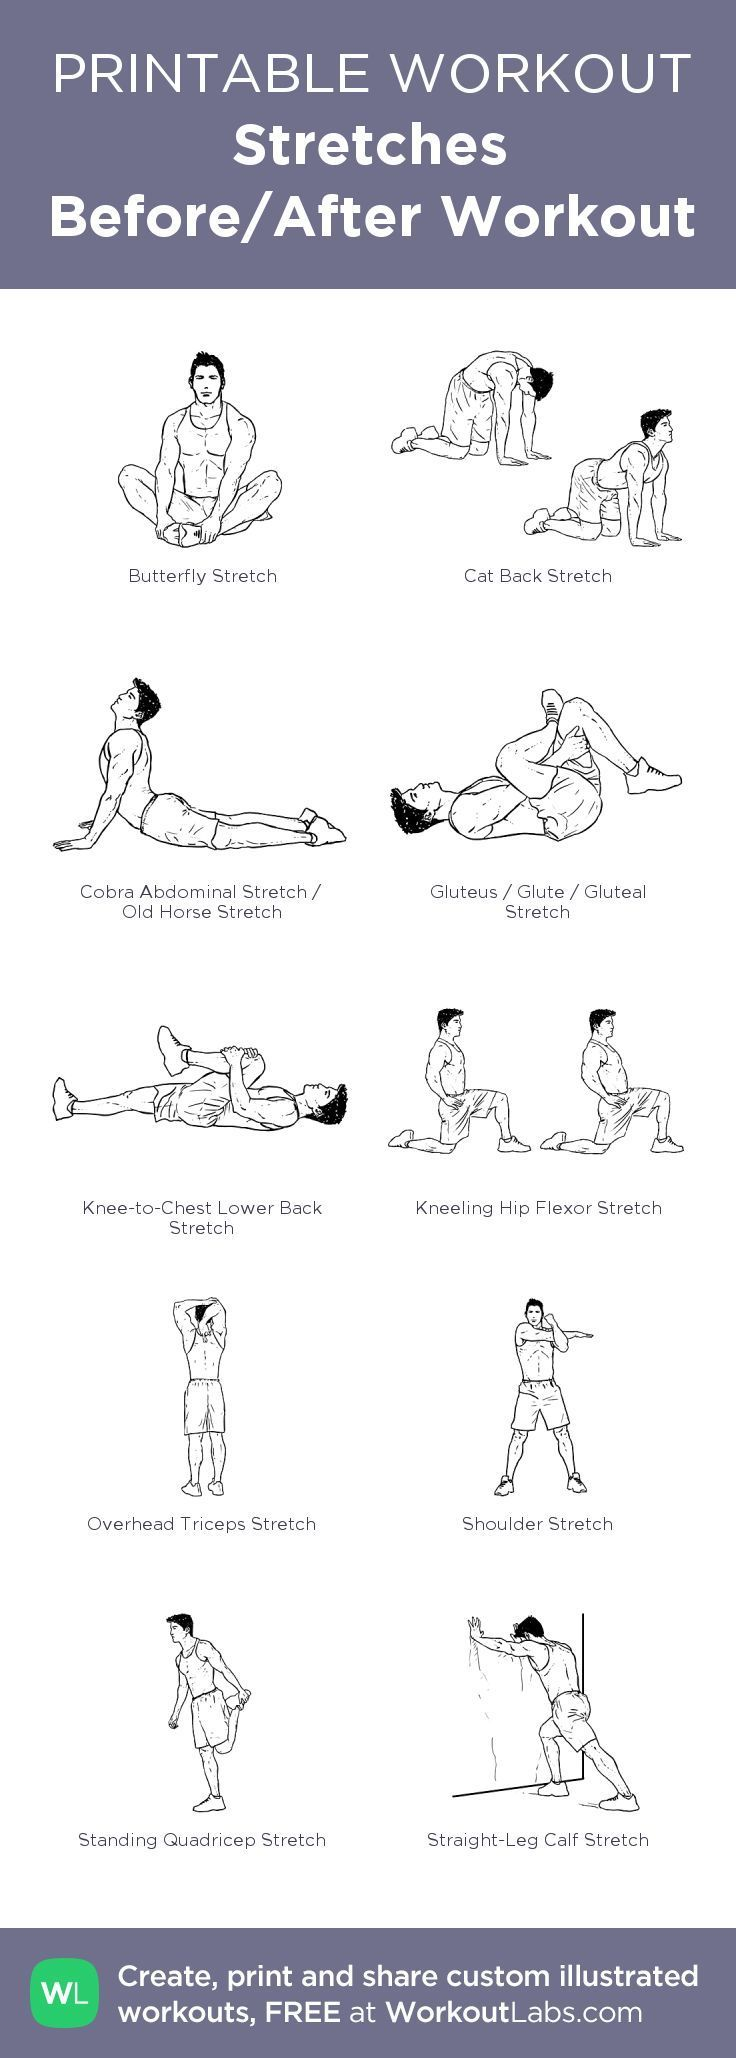 Stretches Before/After Workout my visual workout